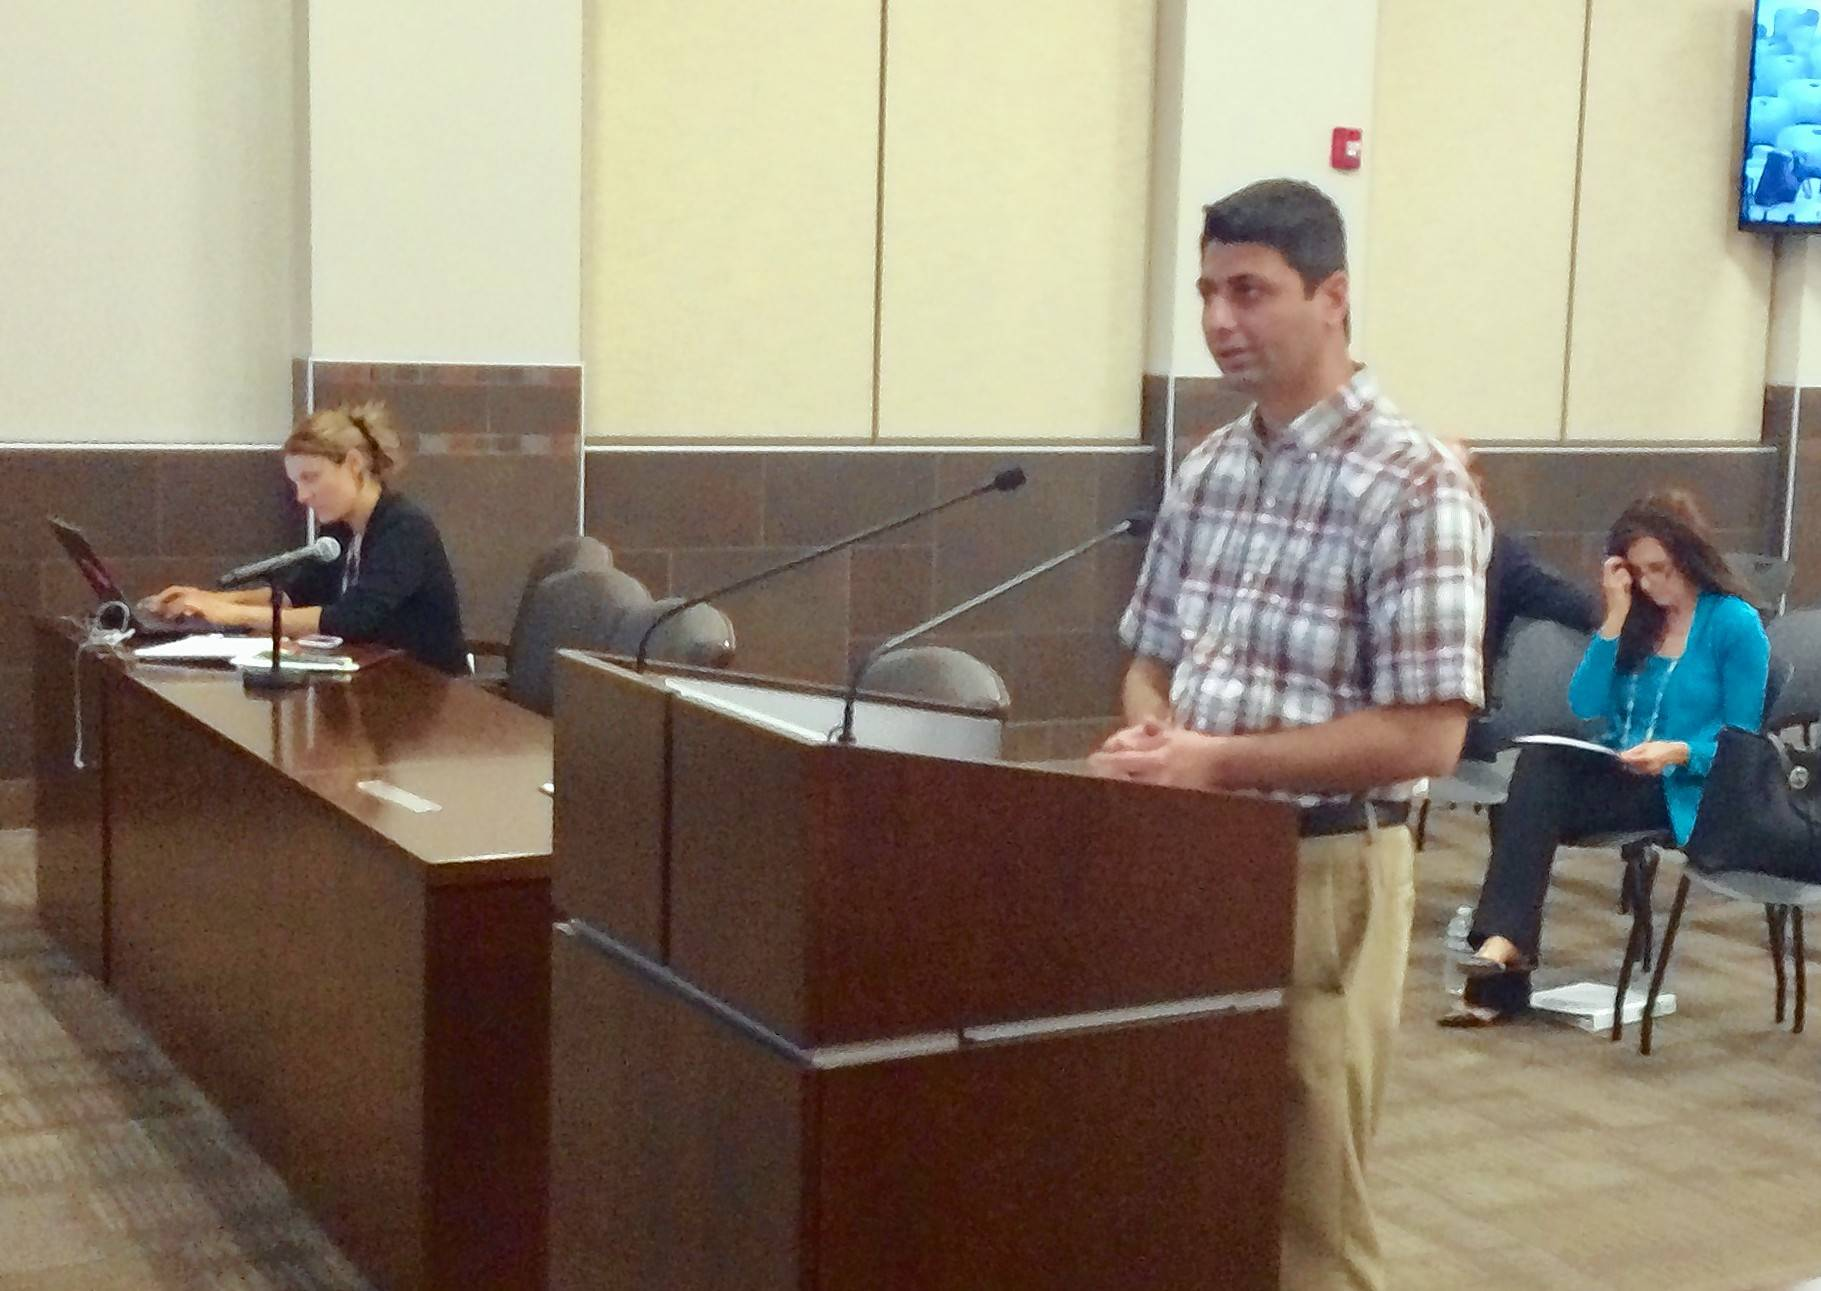 Dr. Sourabh Dhawan answers questions at a Palatine plan commission meeting this week about an animal hospital proposed for the Quentin Corners plaza.